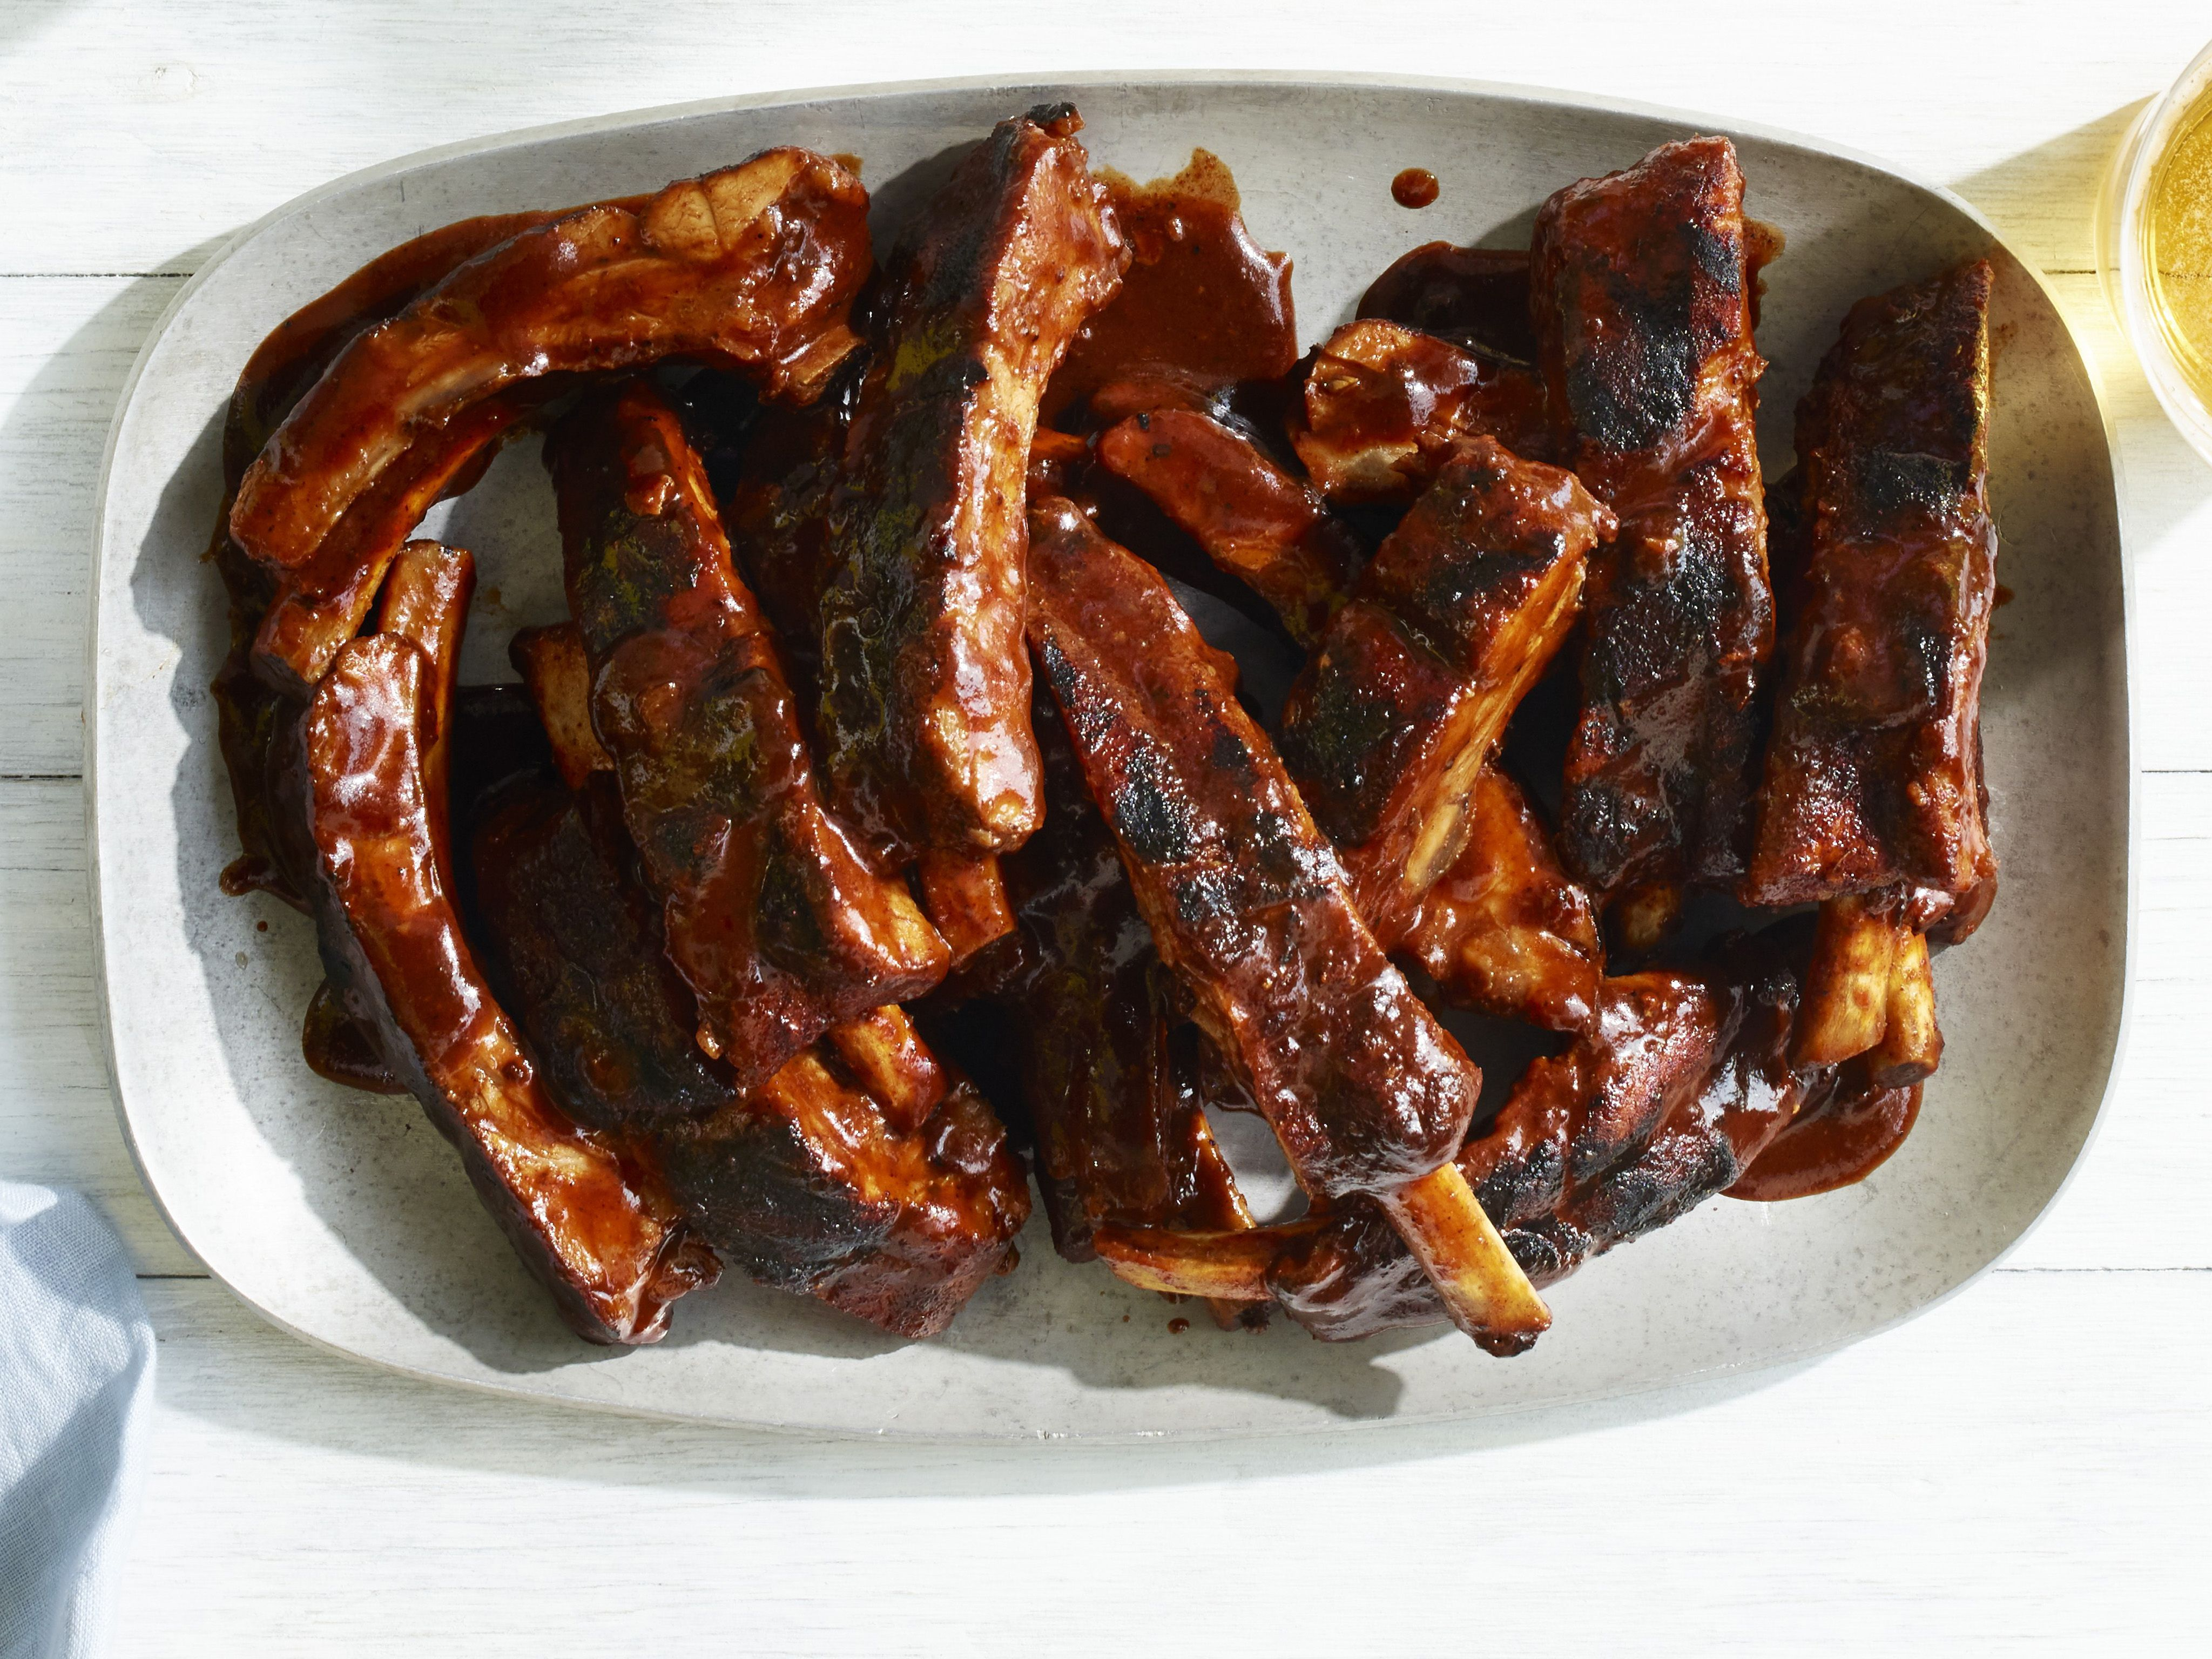 Best barbecue ribs ever recipe pinterest barbecue ribs katie best barbecue ribs ever recipe from katie lee via food network forumfinder Choice Image